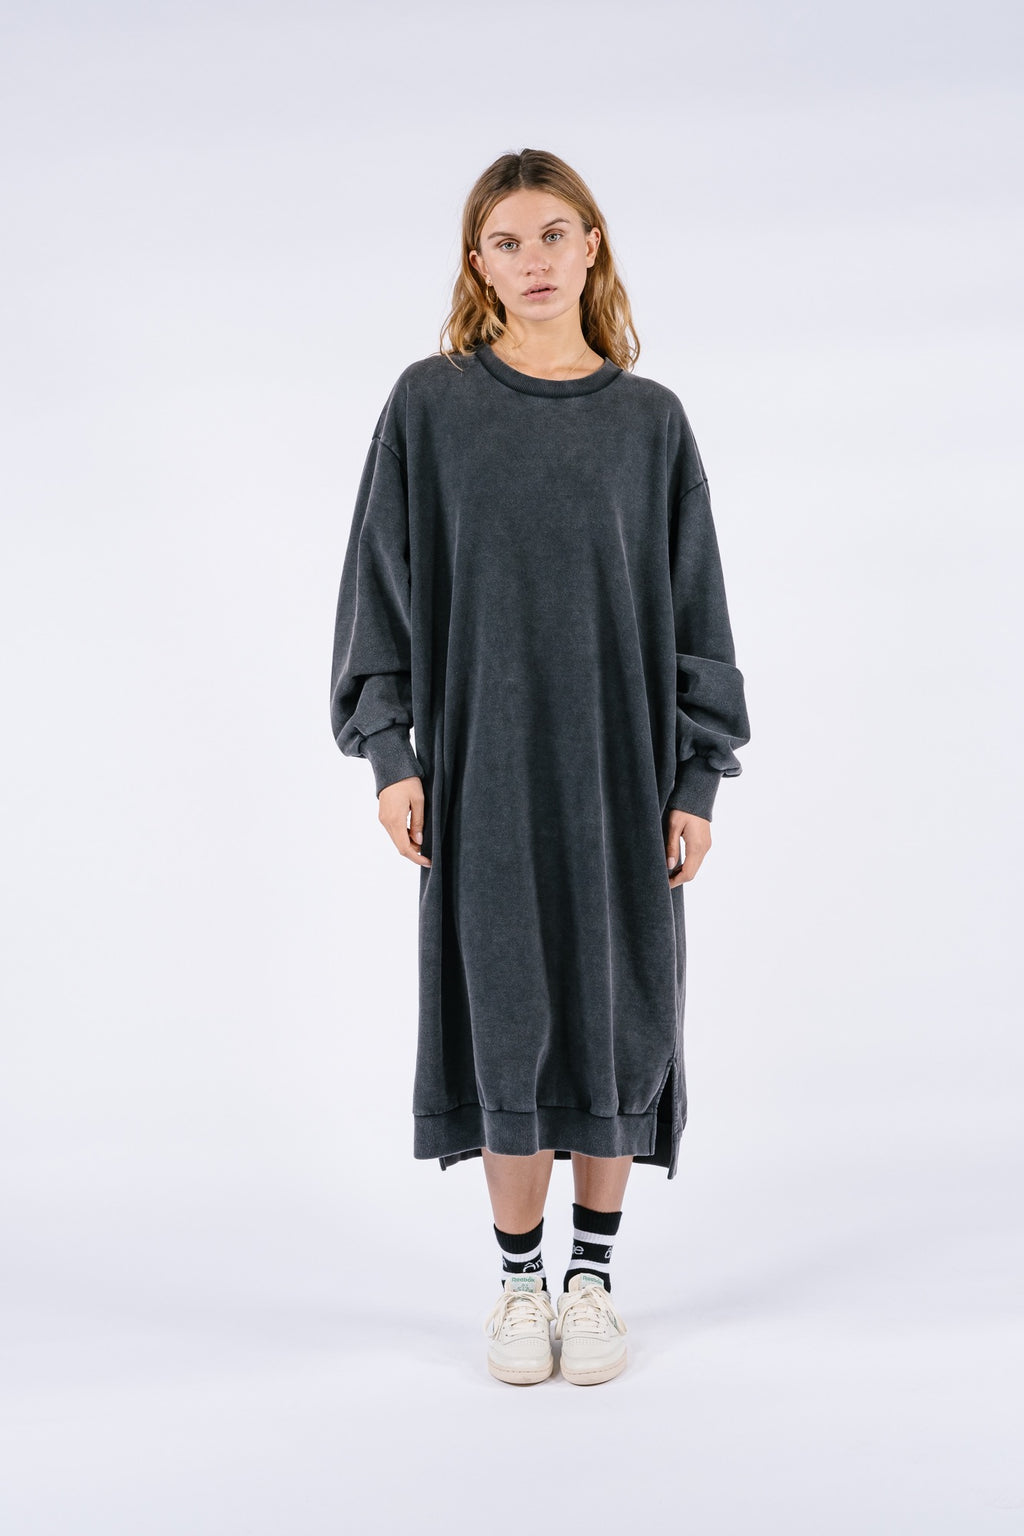 Dancy Sweatshirt Dress | Vintage black